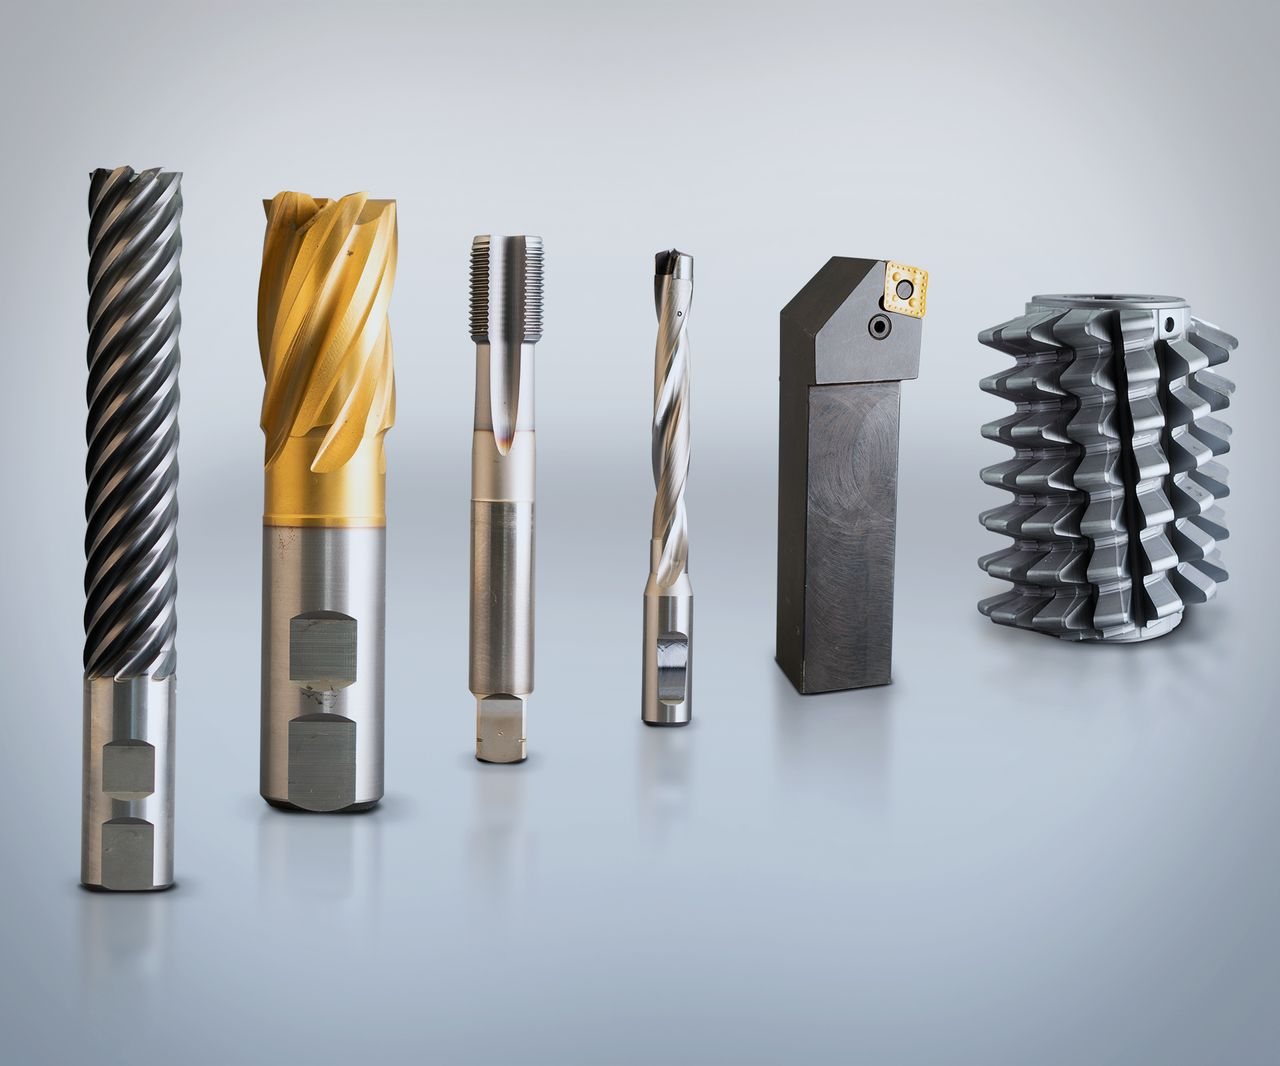 Six metal cutting tools standing next to each other